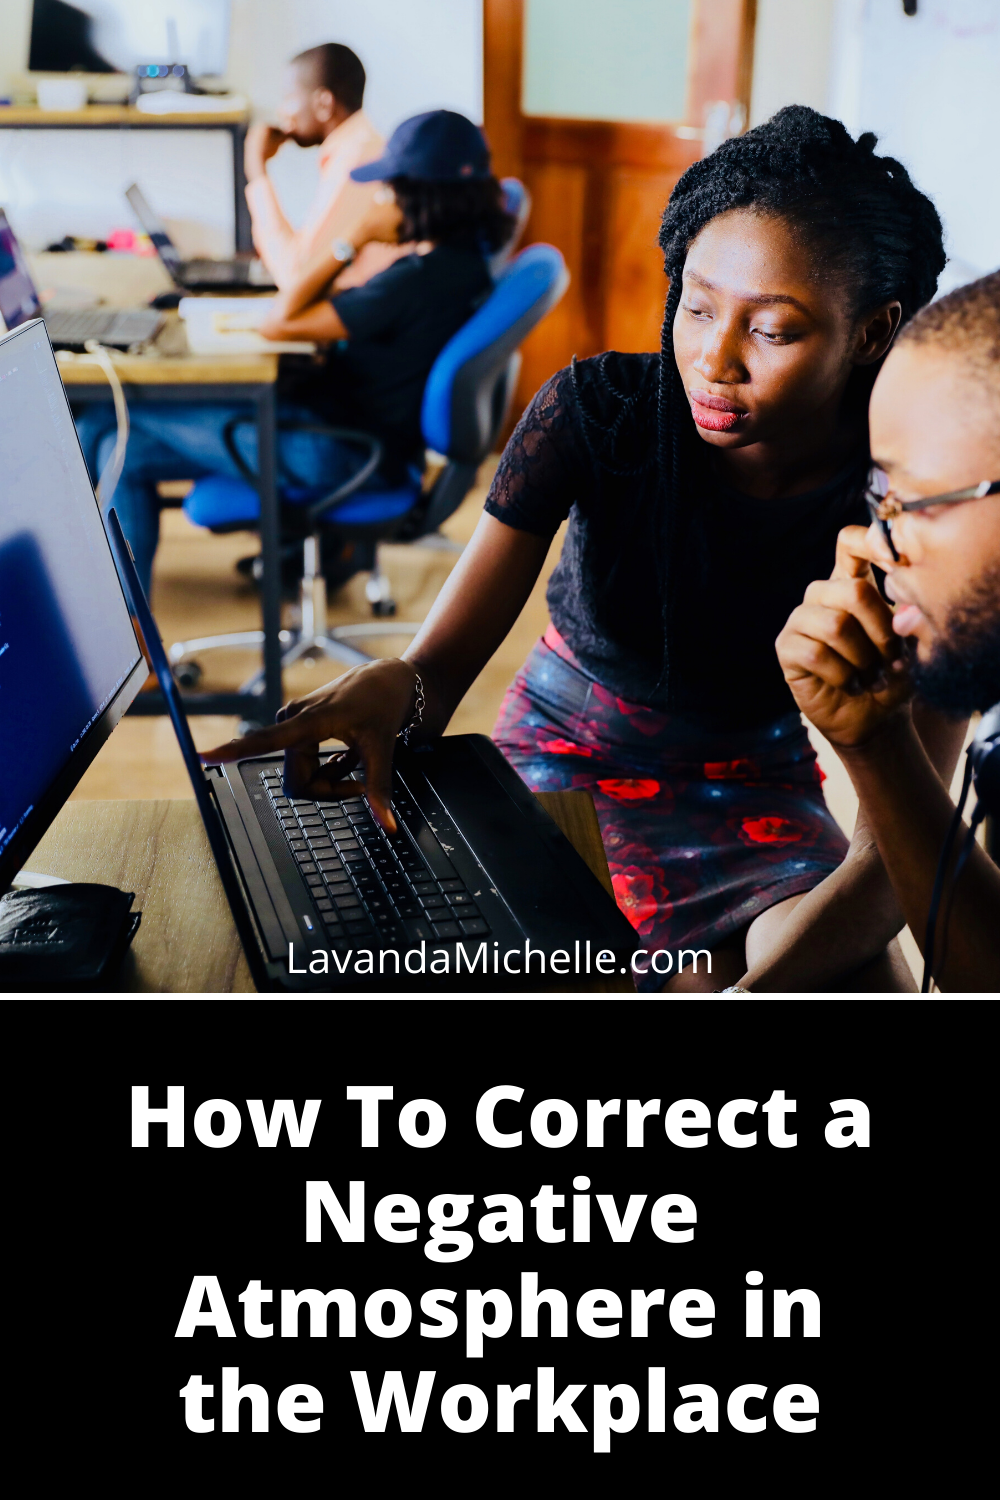 How To Correct a Negative Atmosphere in the Workplace